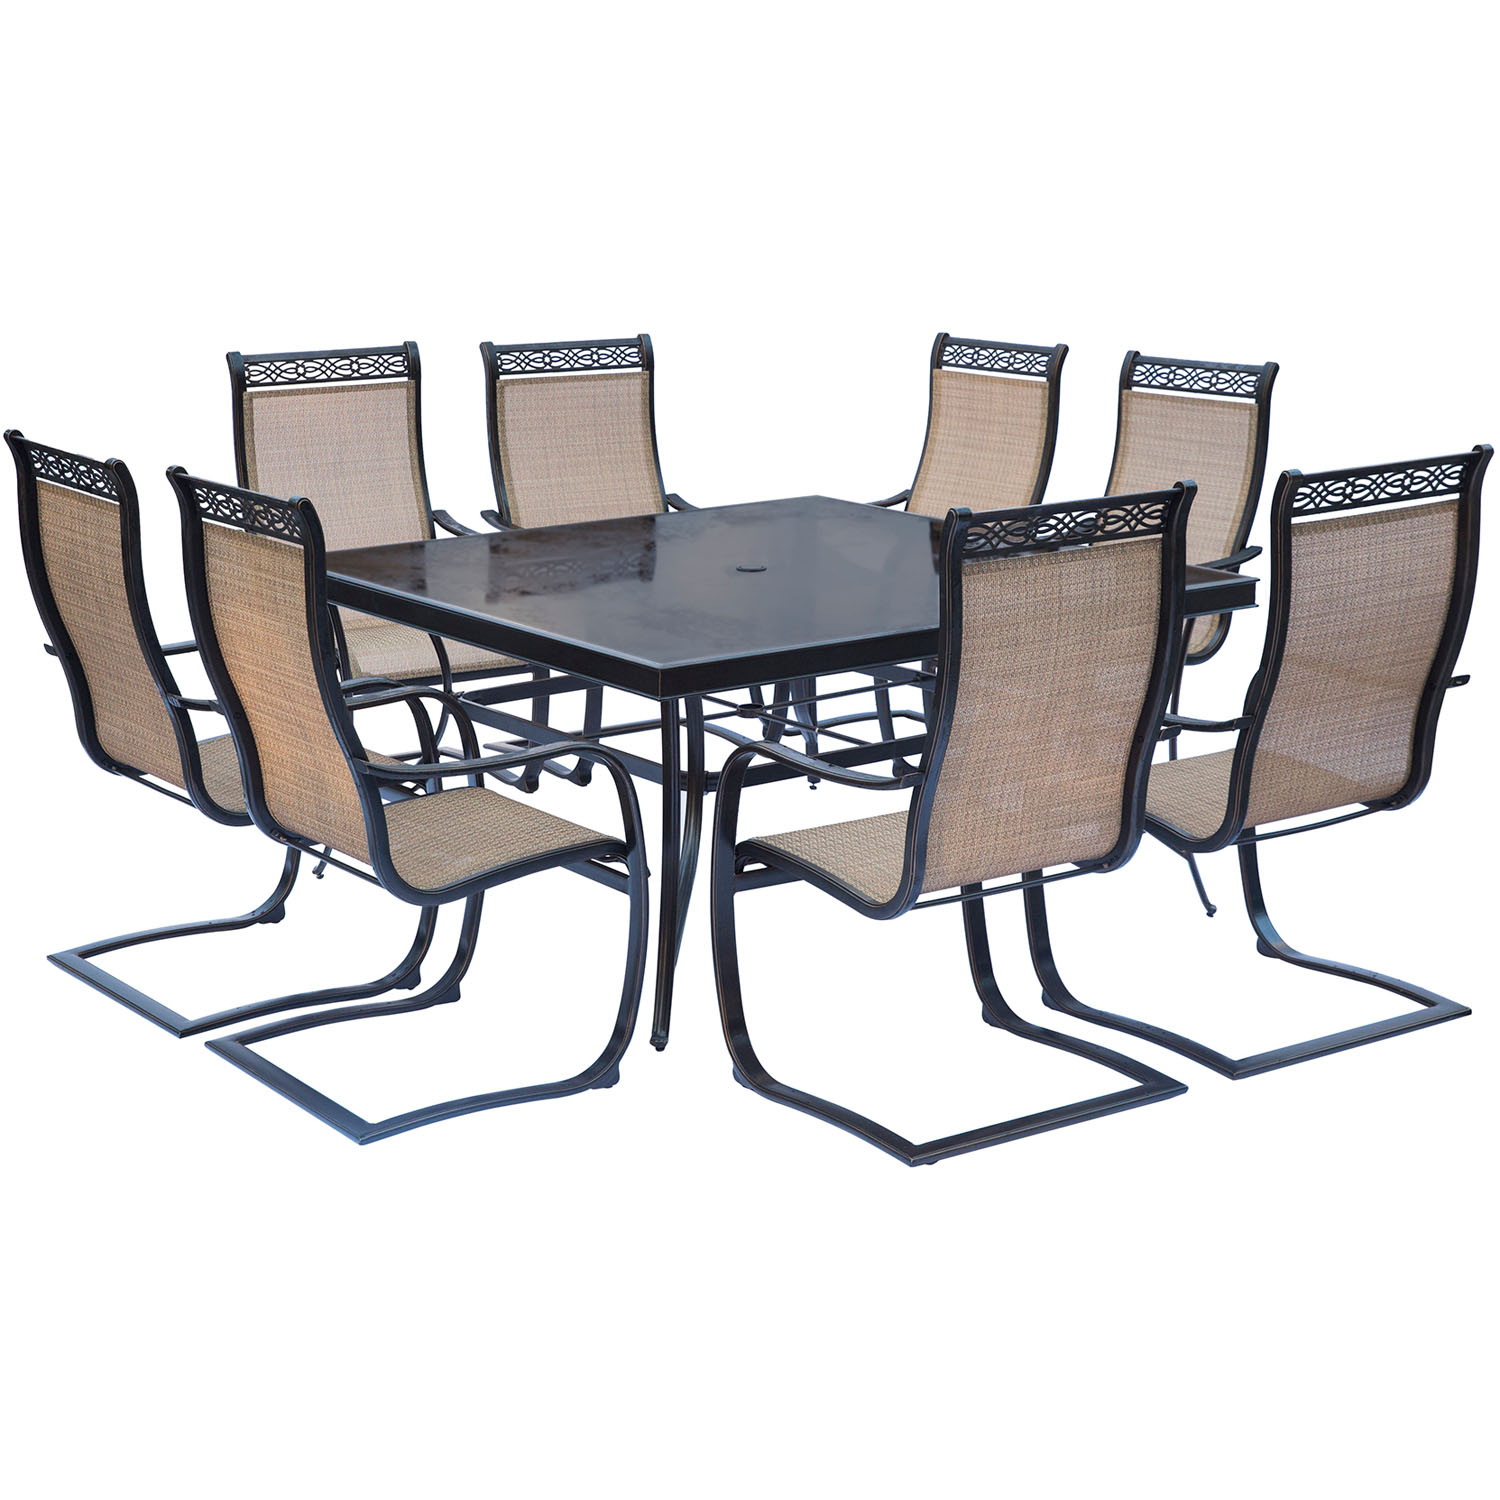 8 Chair Square Dining Table: Monaco 9PC Dining Set With 8 C-Spring Chairs And A 60 In